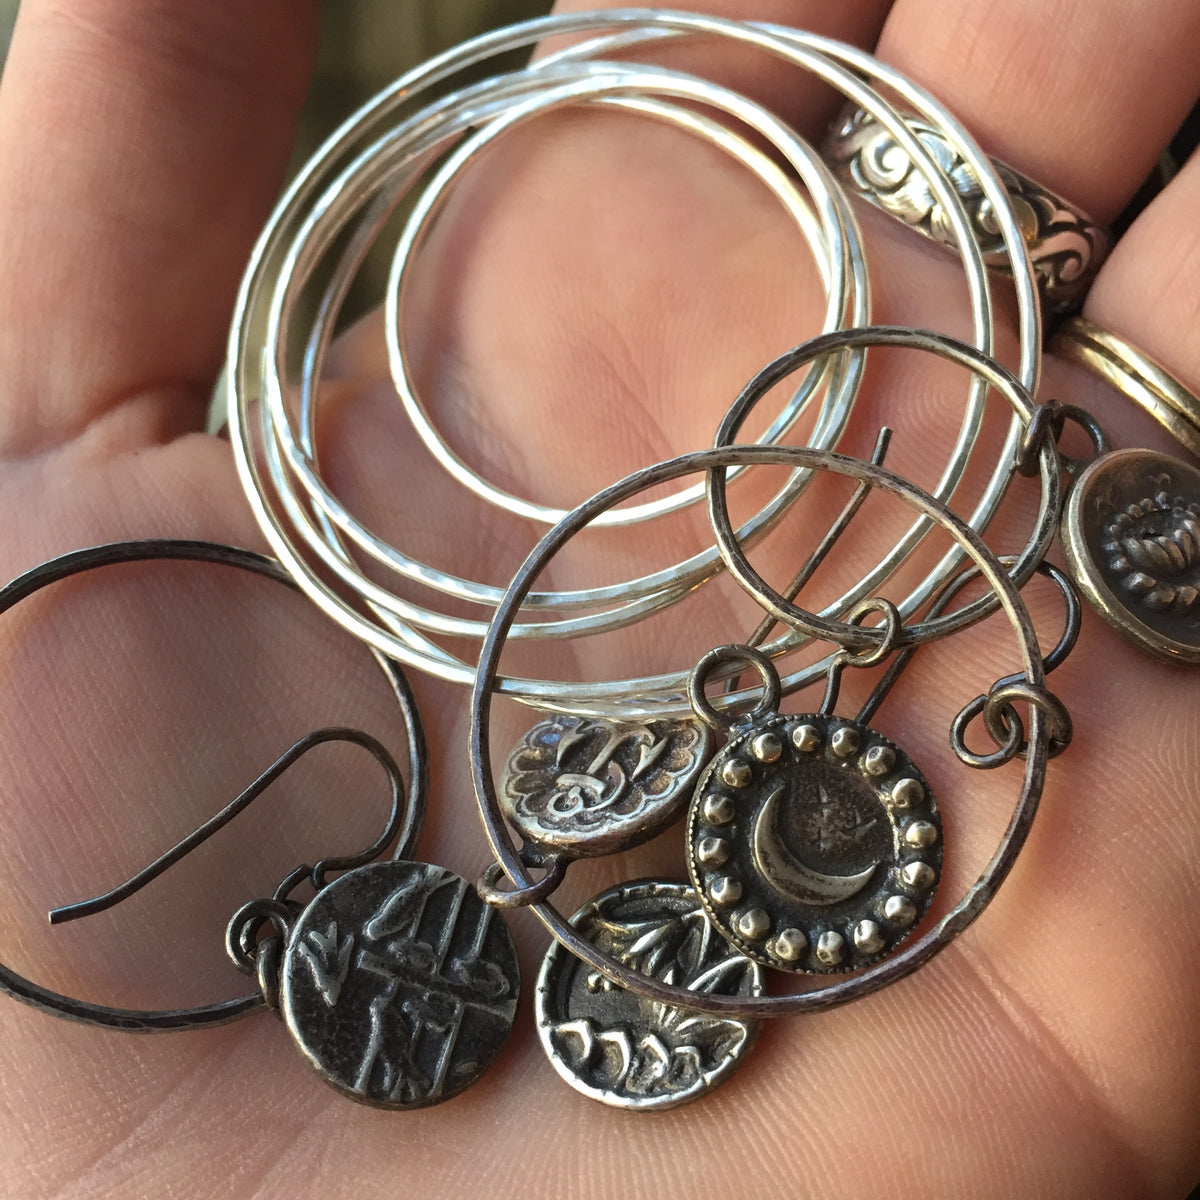 Ethics and Ecology in Supply Chain: Recycled Silver and Bronze Antique Button Jewelry